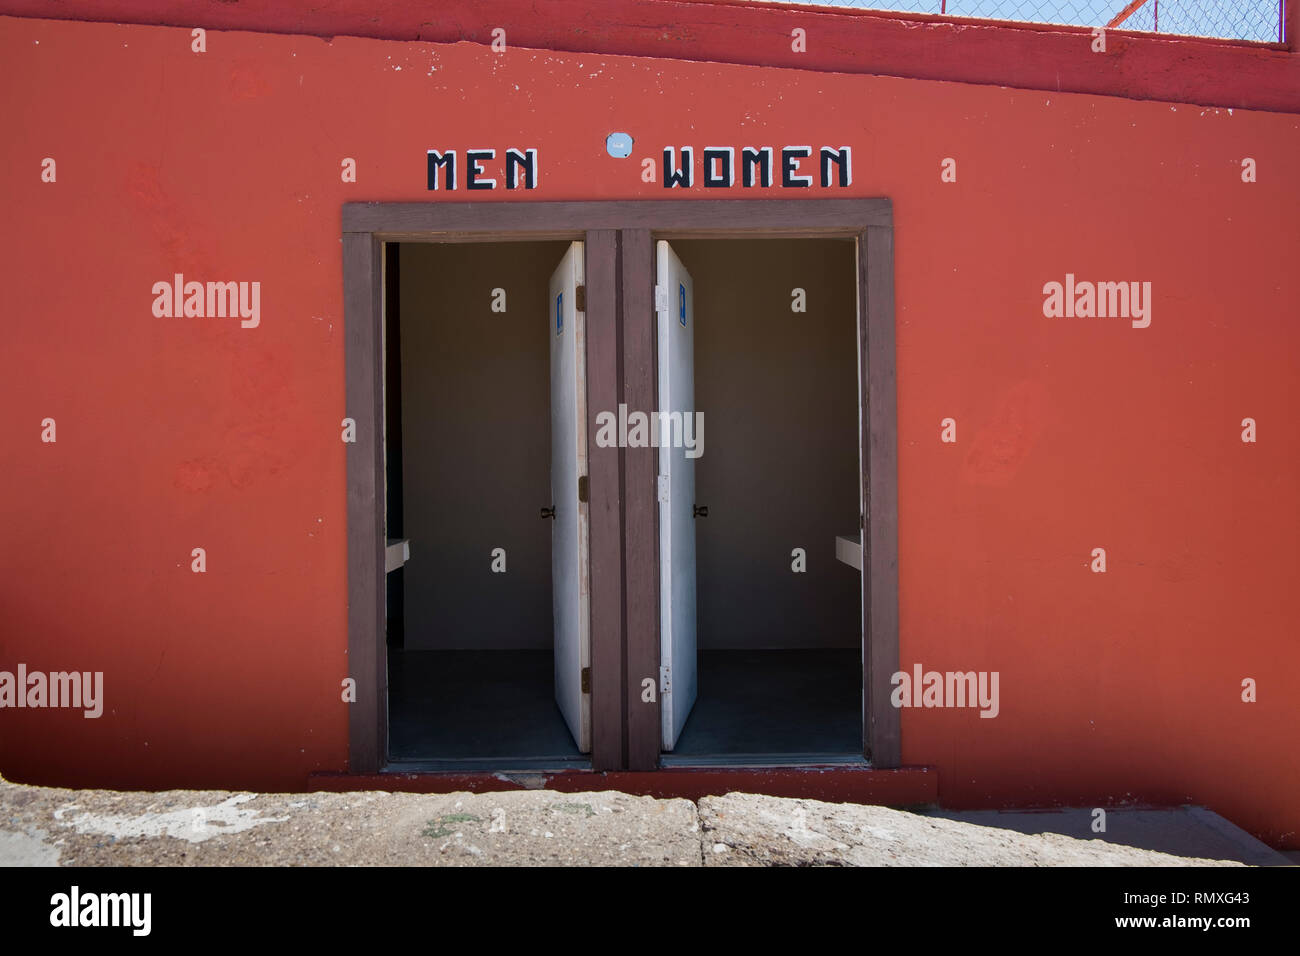 Restrooms in the town of Boquillas del Carmen in Mexico. - Stock Image